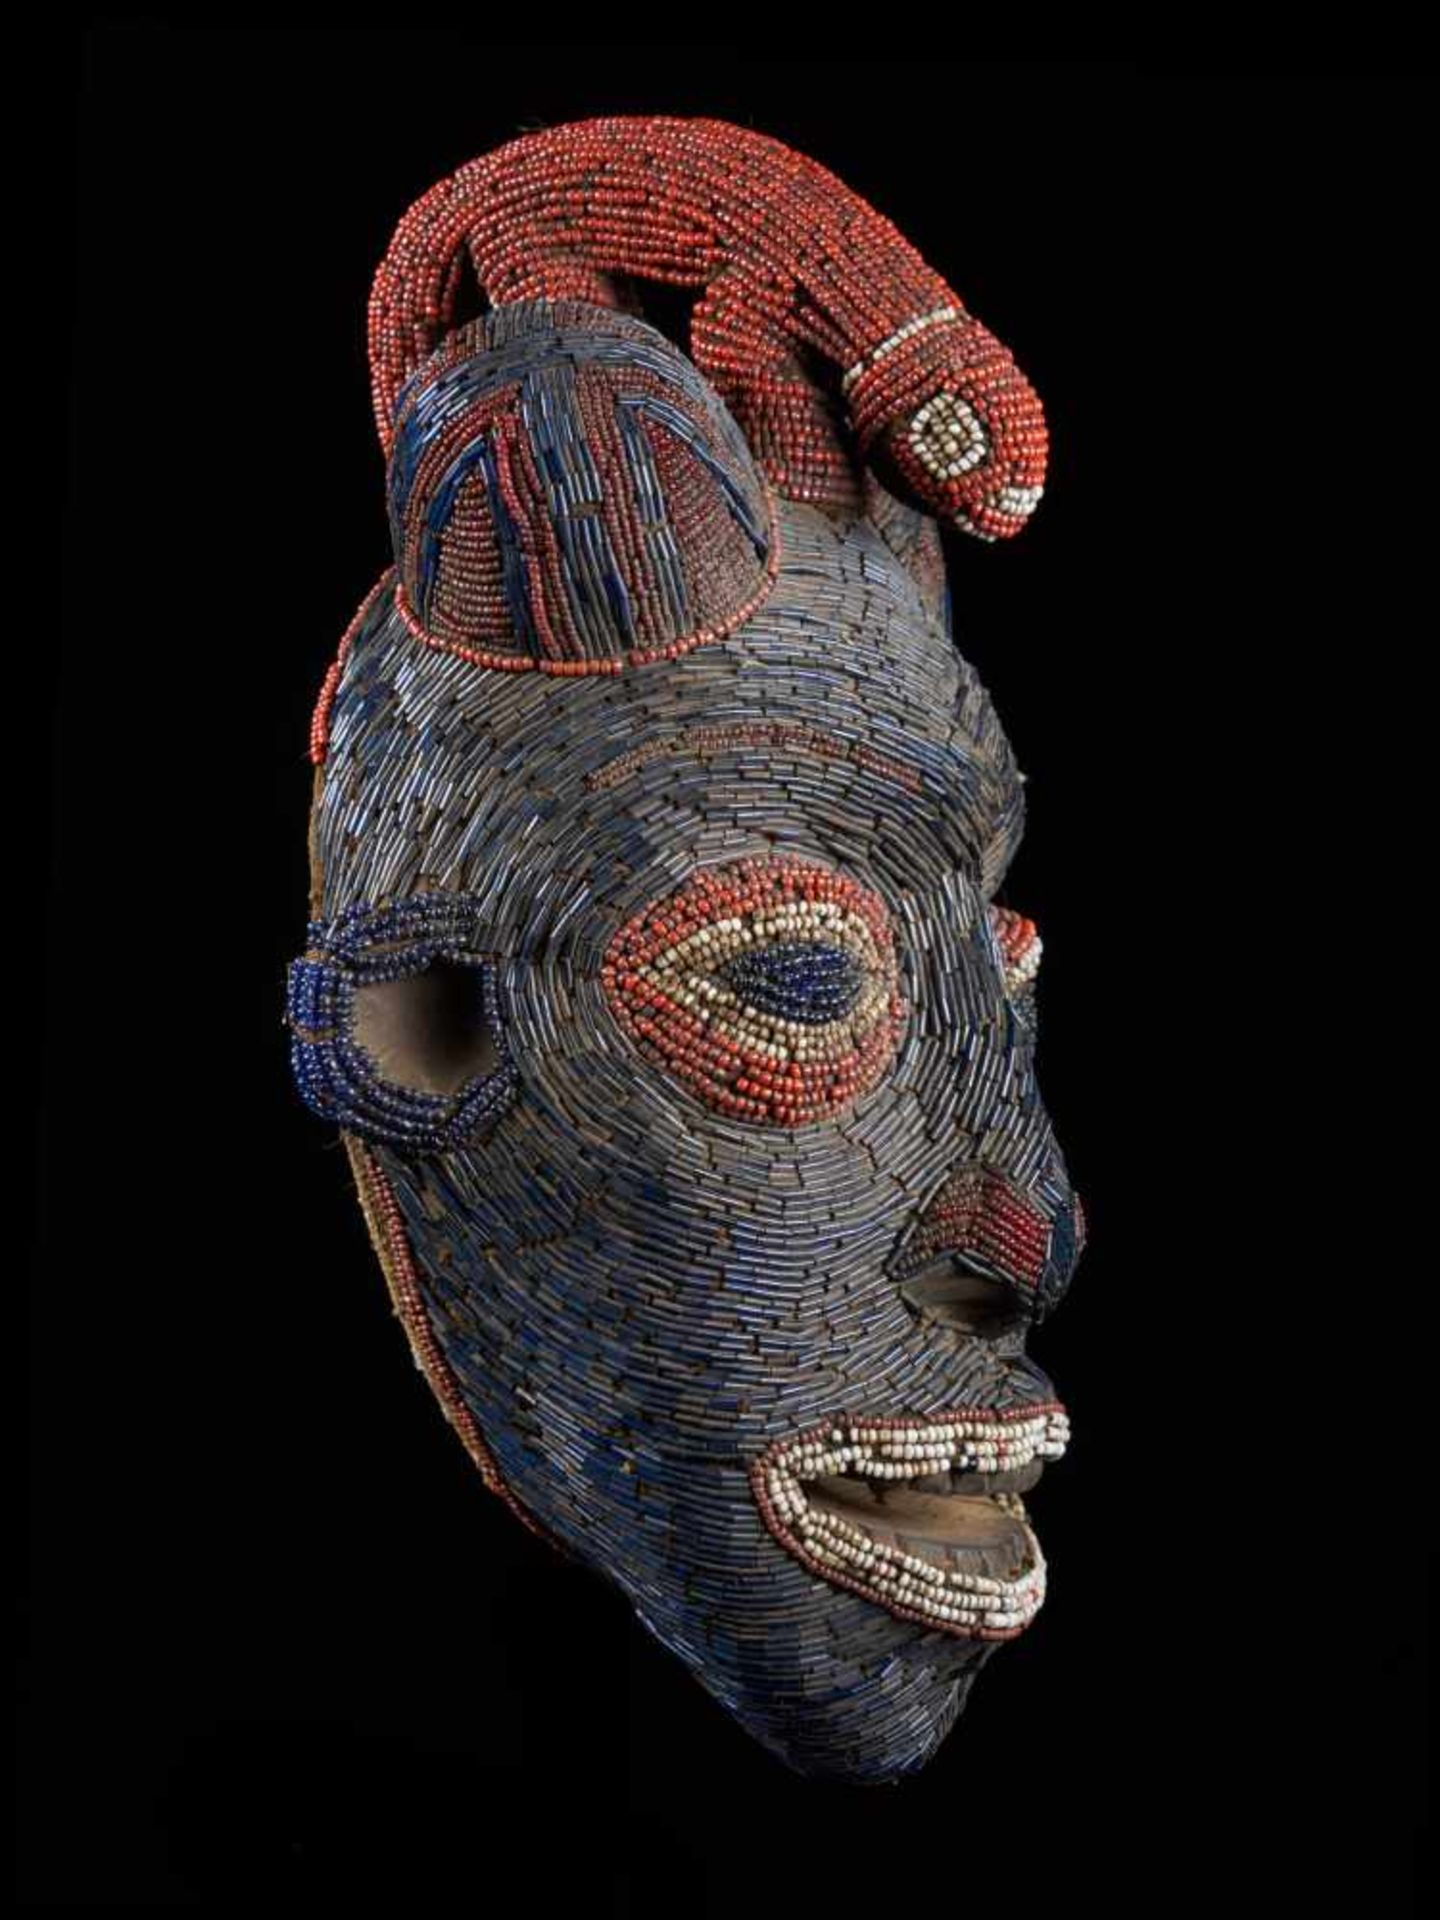 Facemask Topped With Leopard Figure - Tribal ArtAn exquisite blue face mask. This wooden mask is - Bild 6 aus 6